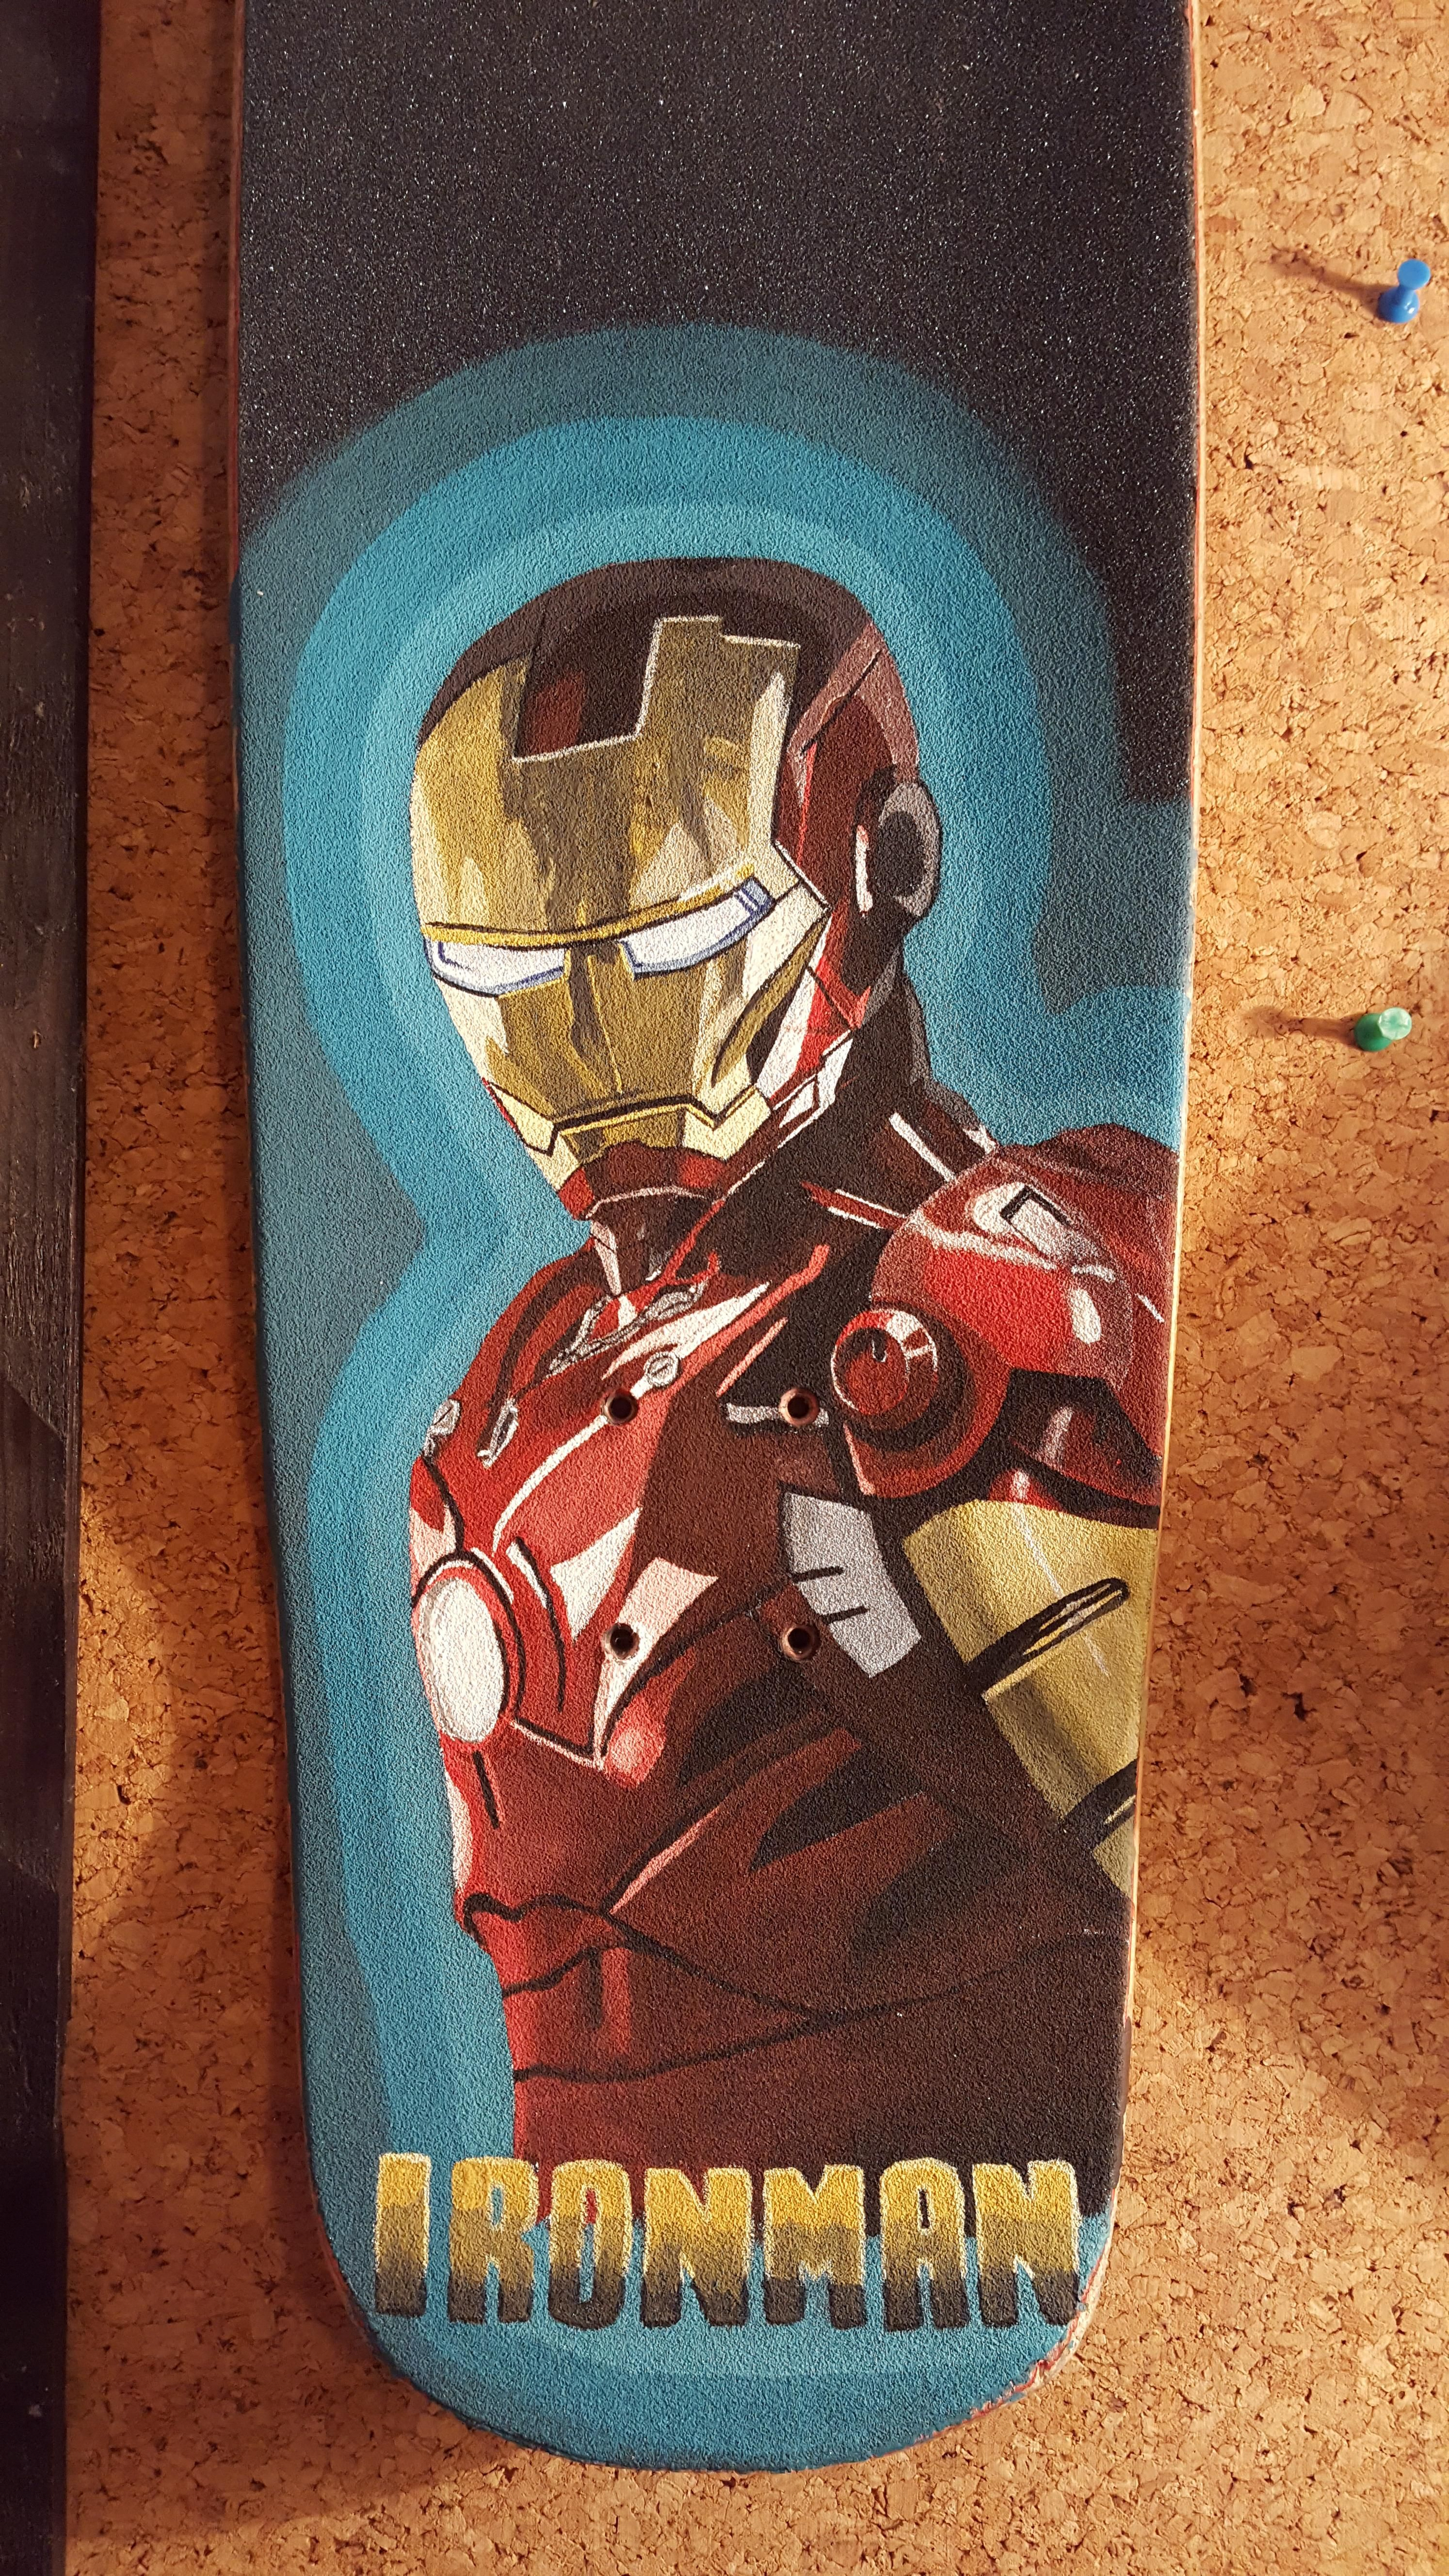 I Decided To Paint Iron Man On The Grip Tape Of My Cruzer Skateboard It Turned Out So Nice For My First Painting That I Have Iron Man Painting Tape Painting